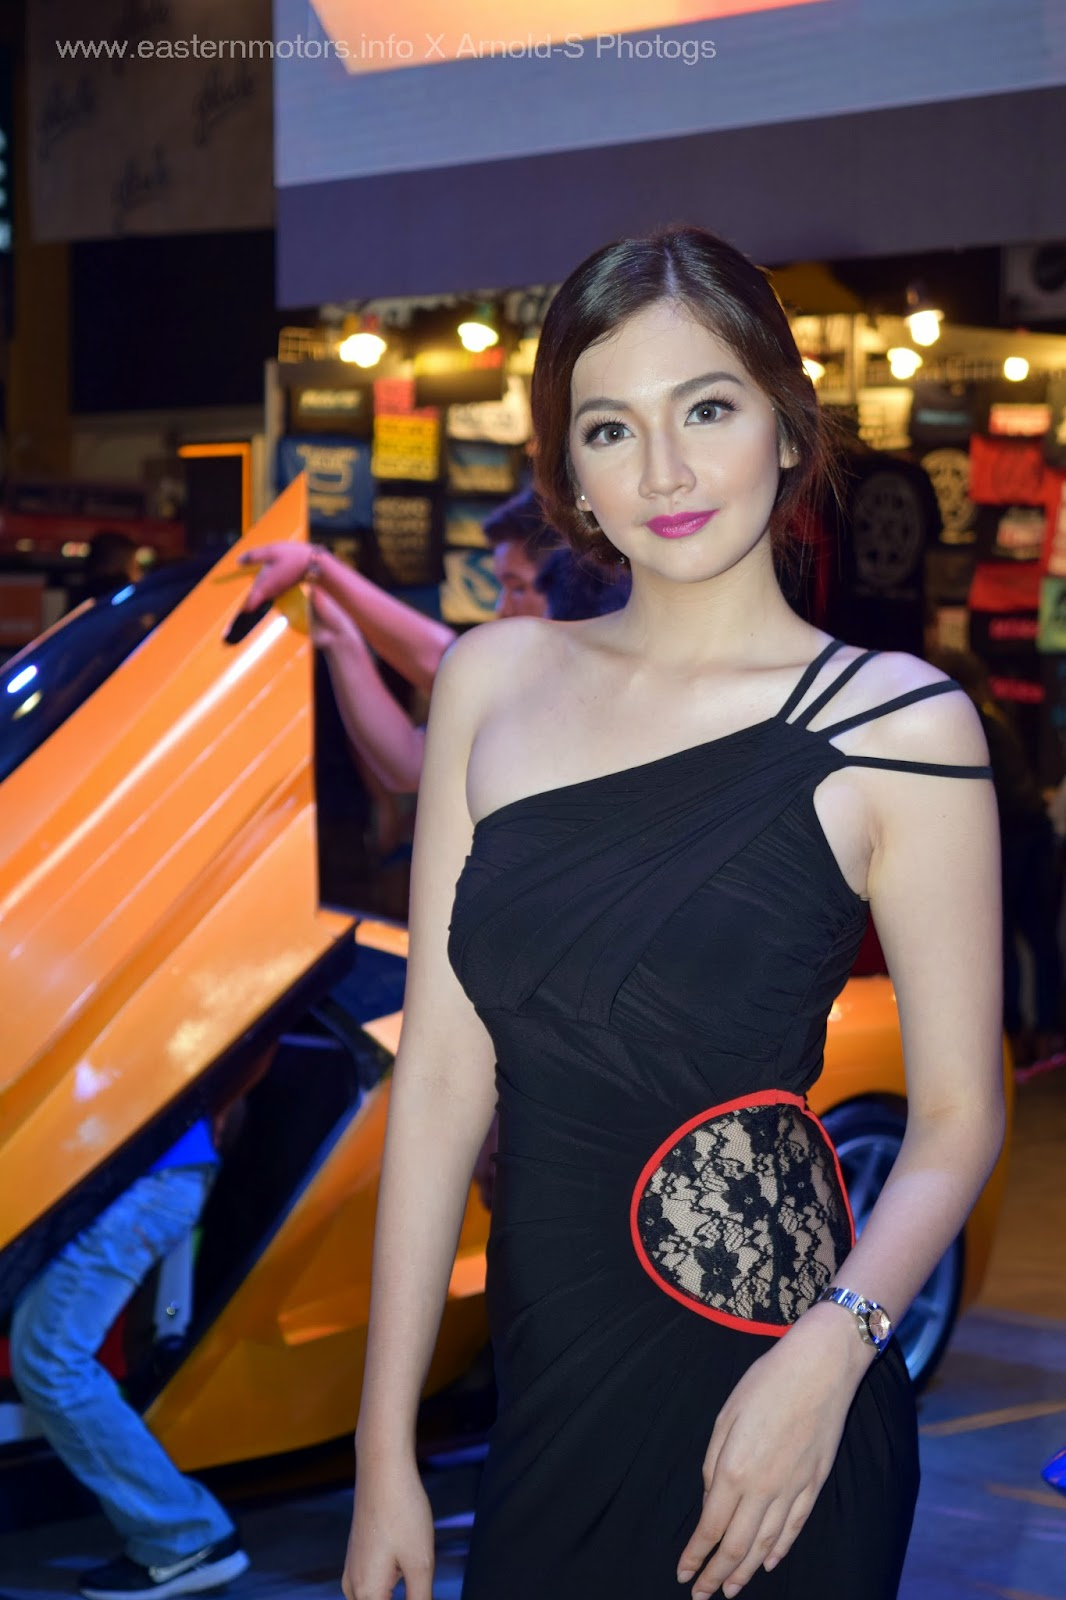 Manila Motoring Your Source For Automotive Information In The - Car show models photos